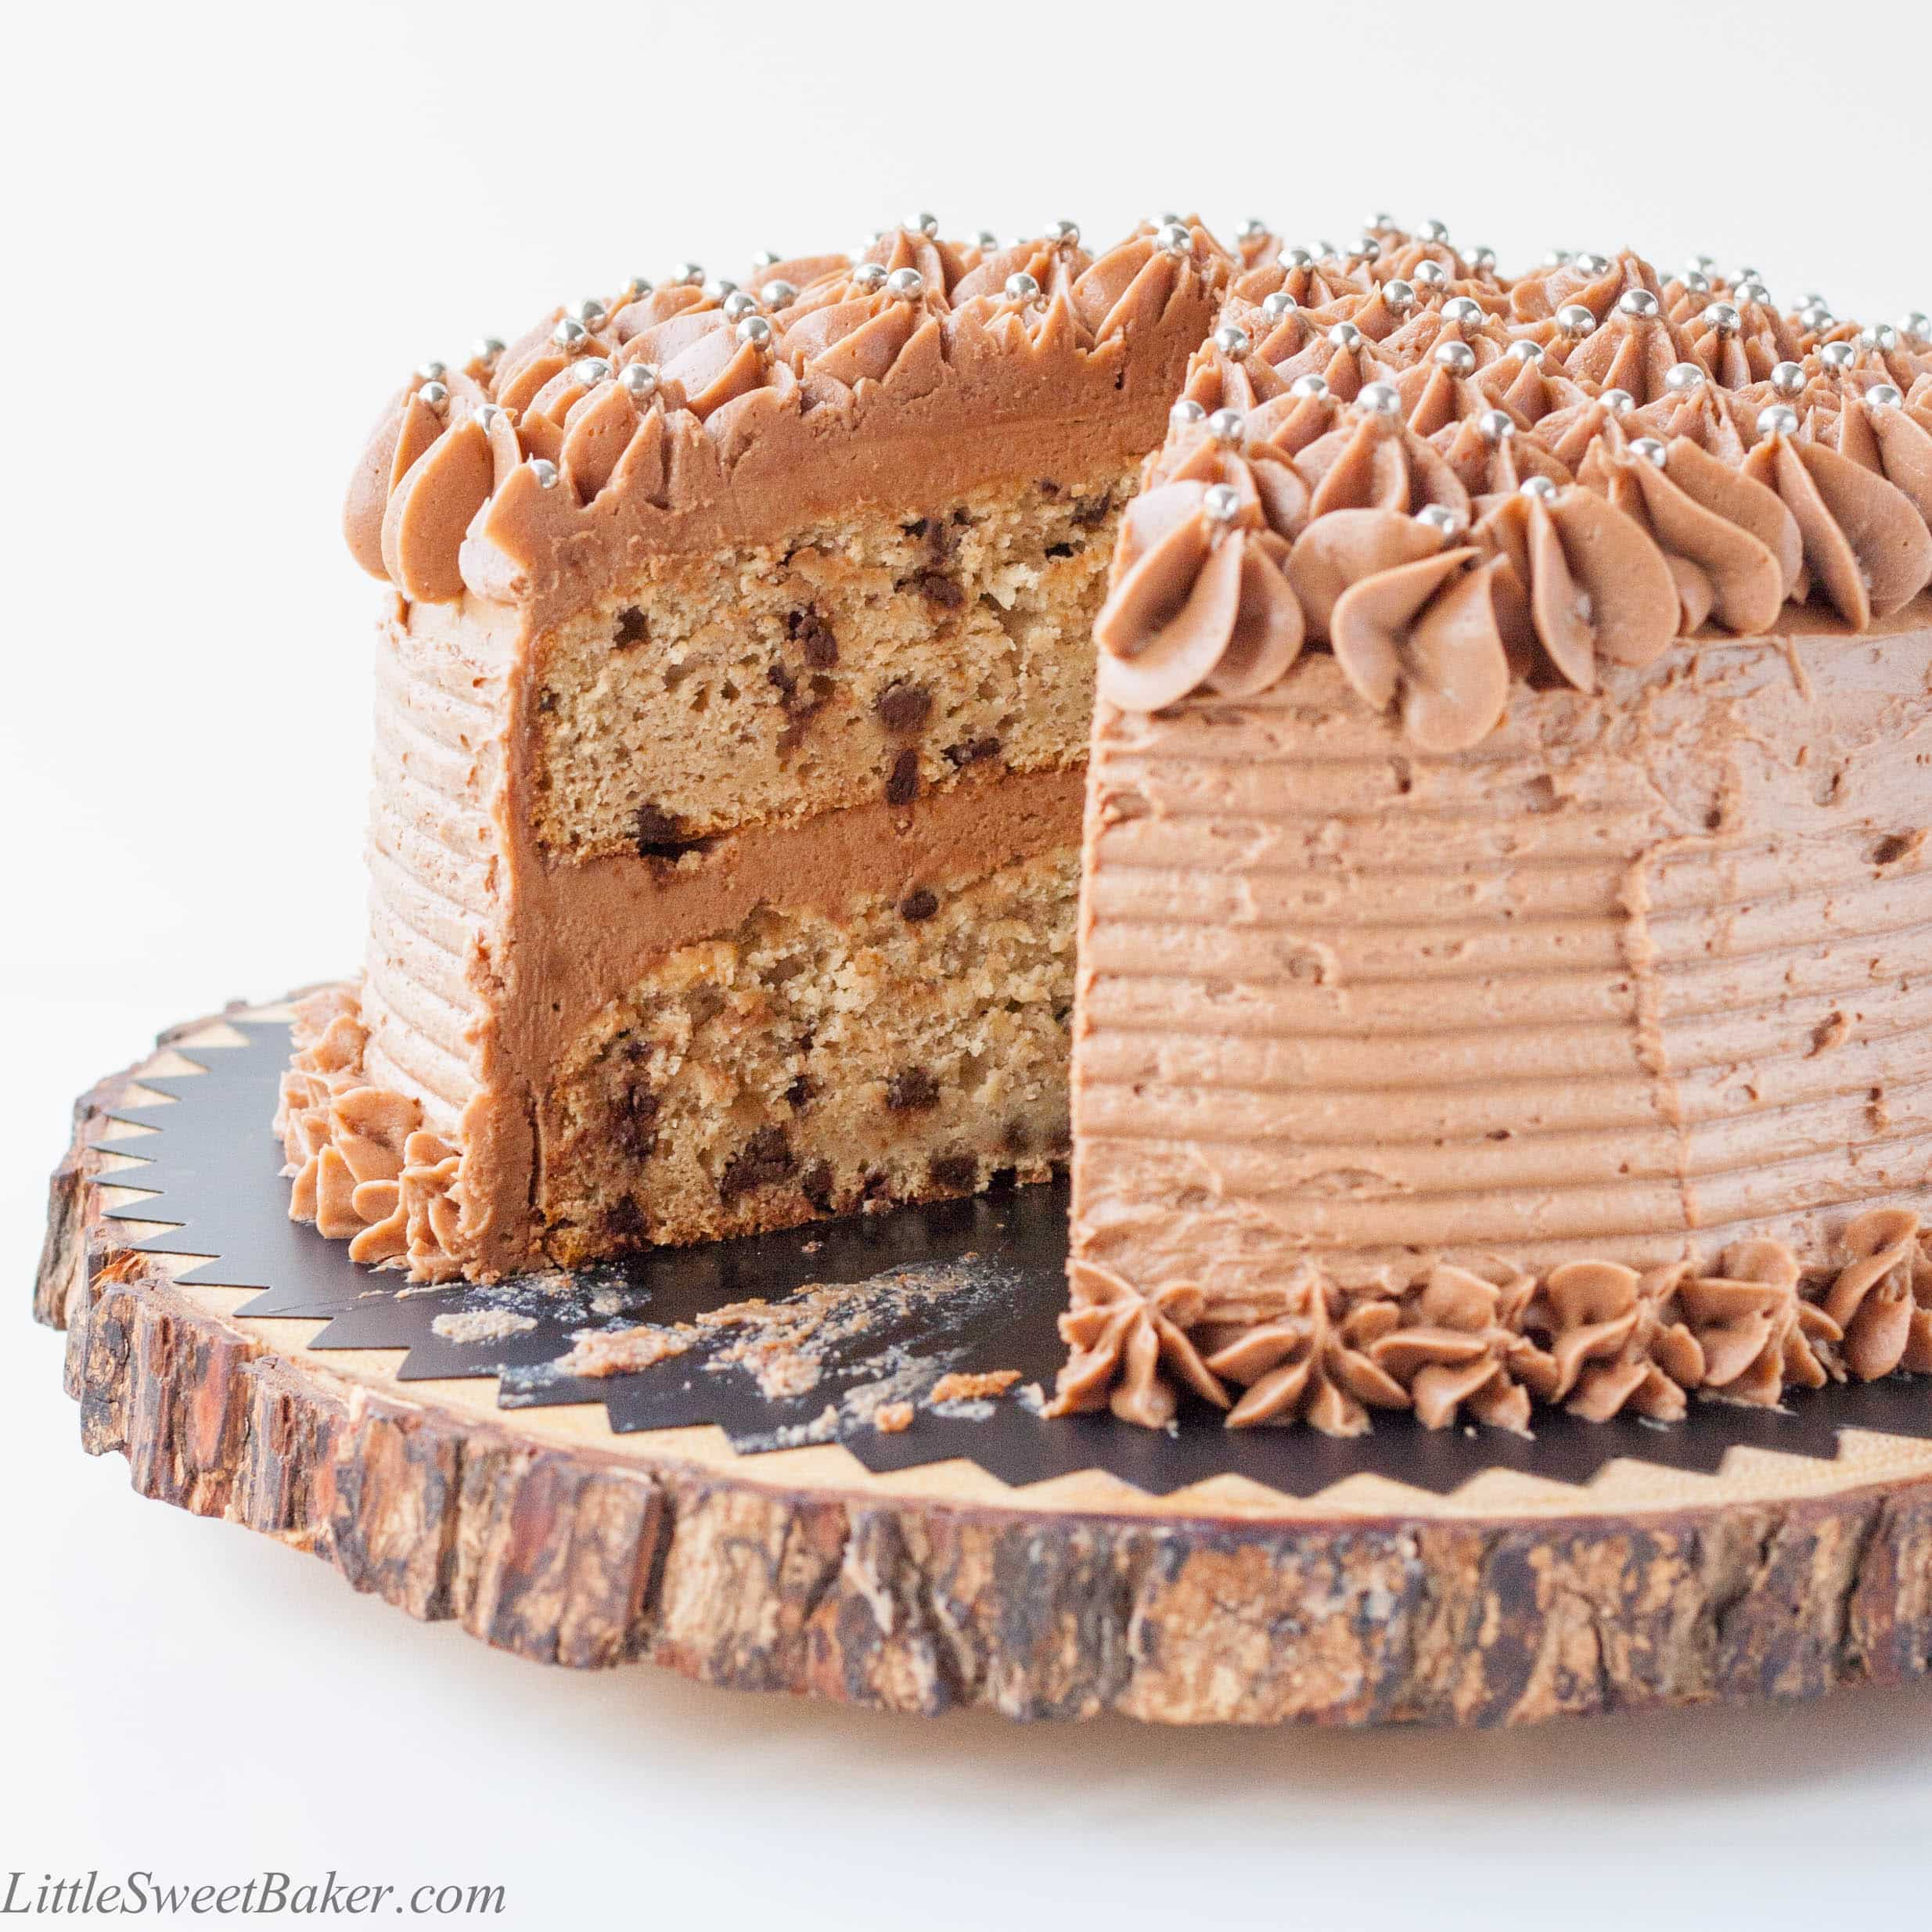 Banana Chocolate Chip Cake with Milk Chocolate Buttercream What  A dense  moist  banana bread like cake with the added taste and  texture of sweet mini chocolate chips in every bite  There s a delicate  hint of